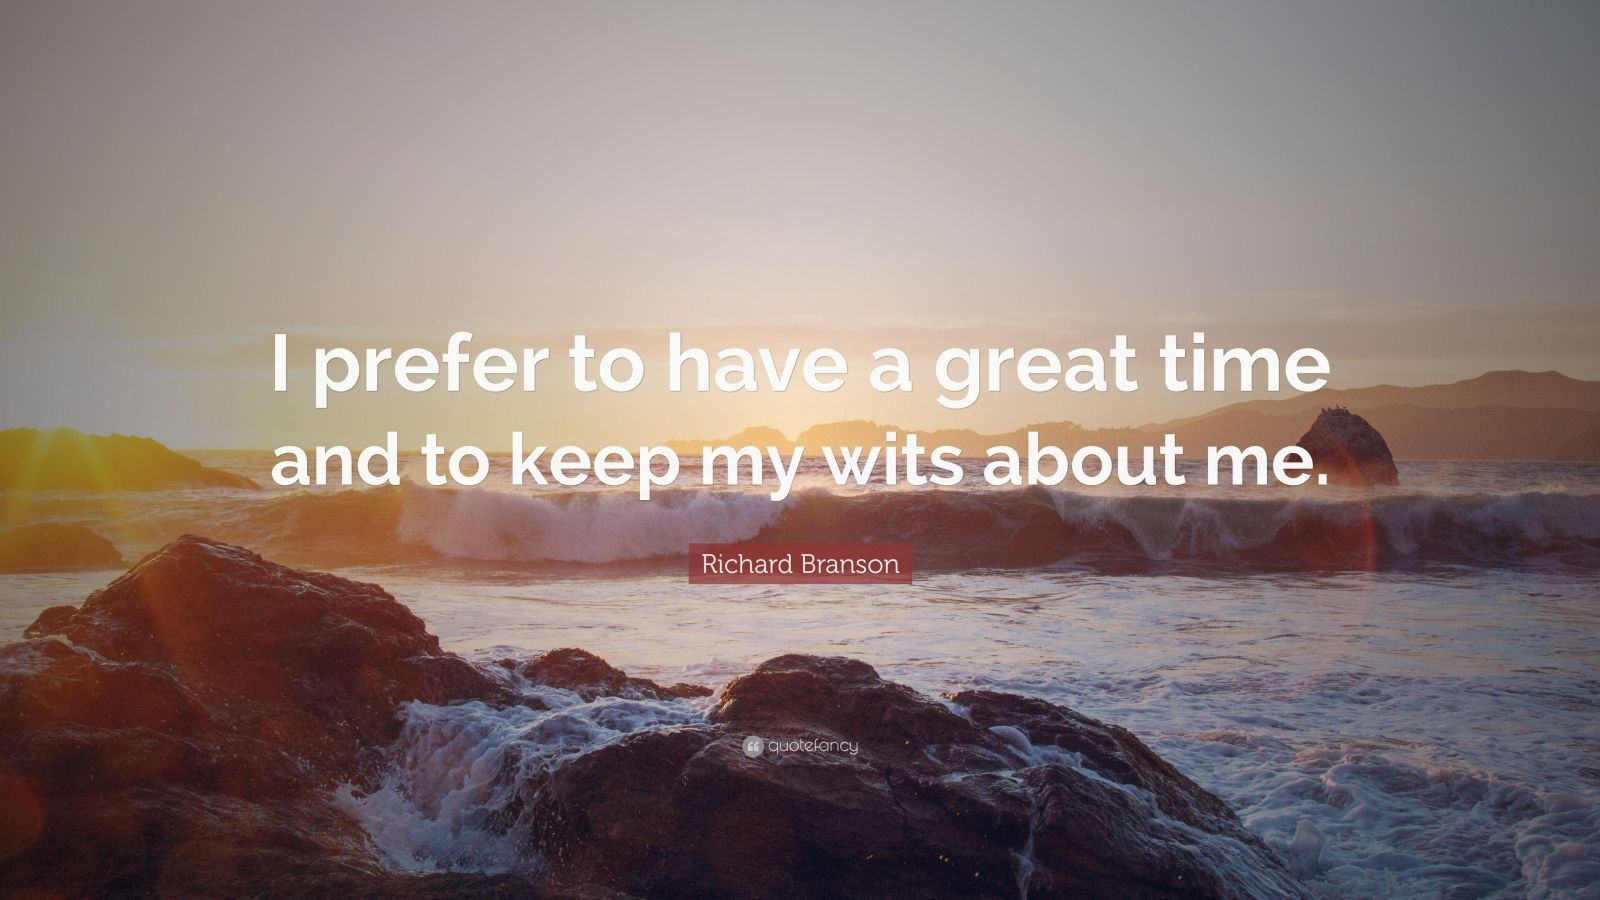 """Richard Branson Quote: """"I prefer to have a great time and to keep my wits about me."""""""